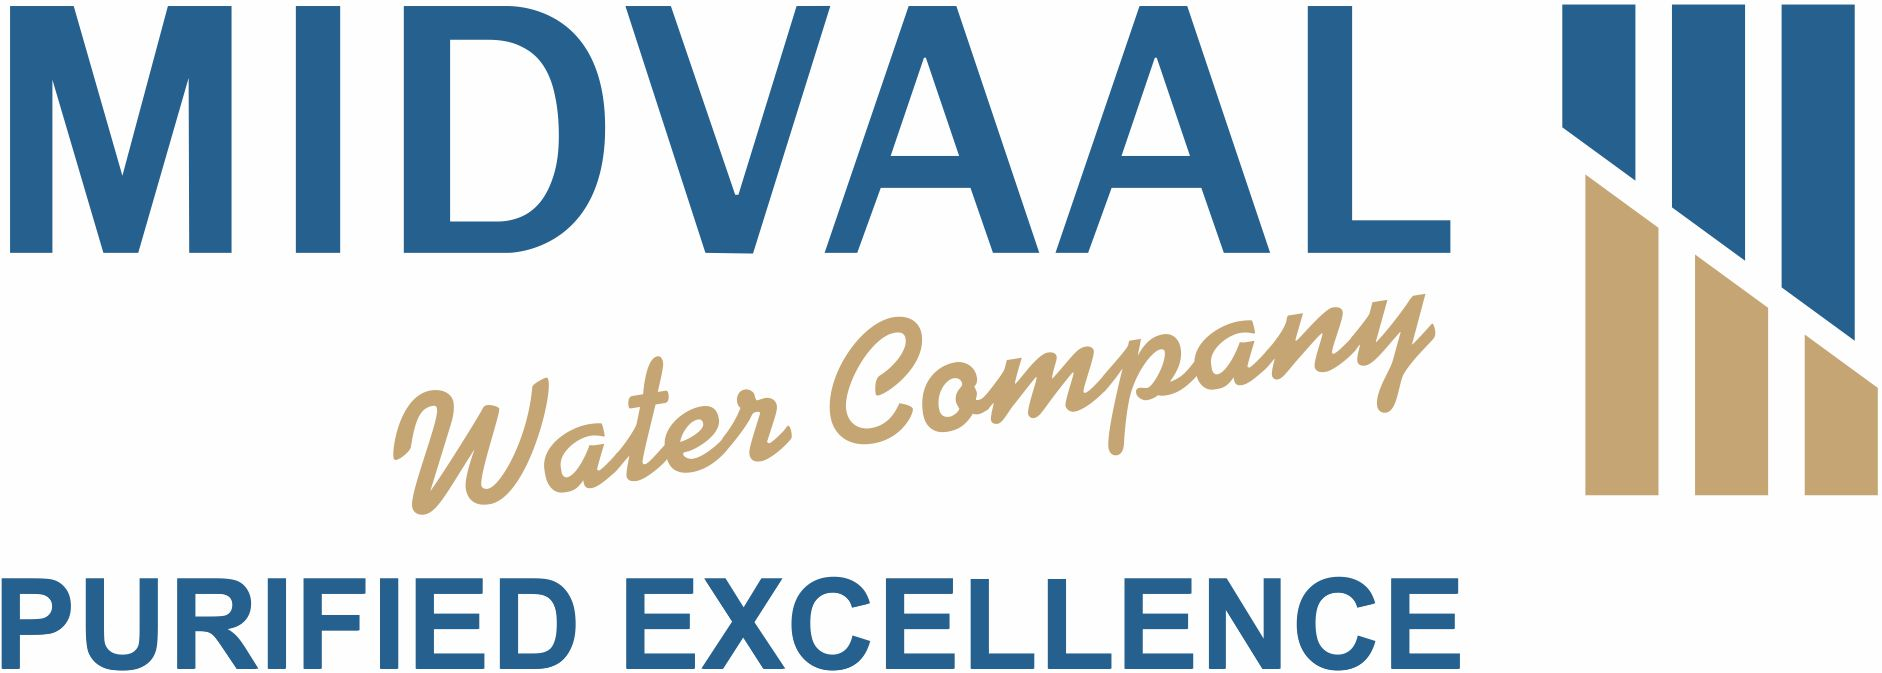 Midvaal Water Company | Purified Excellence